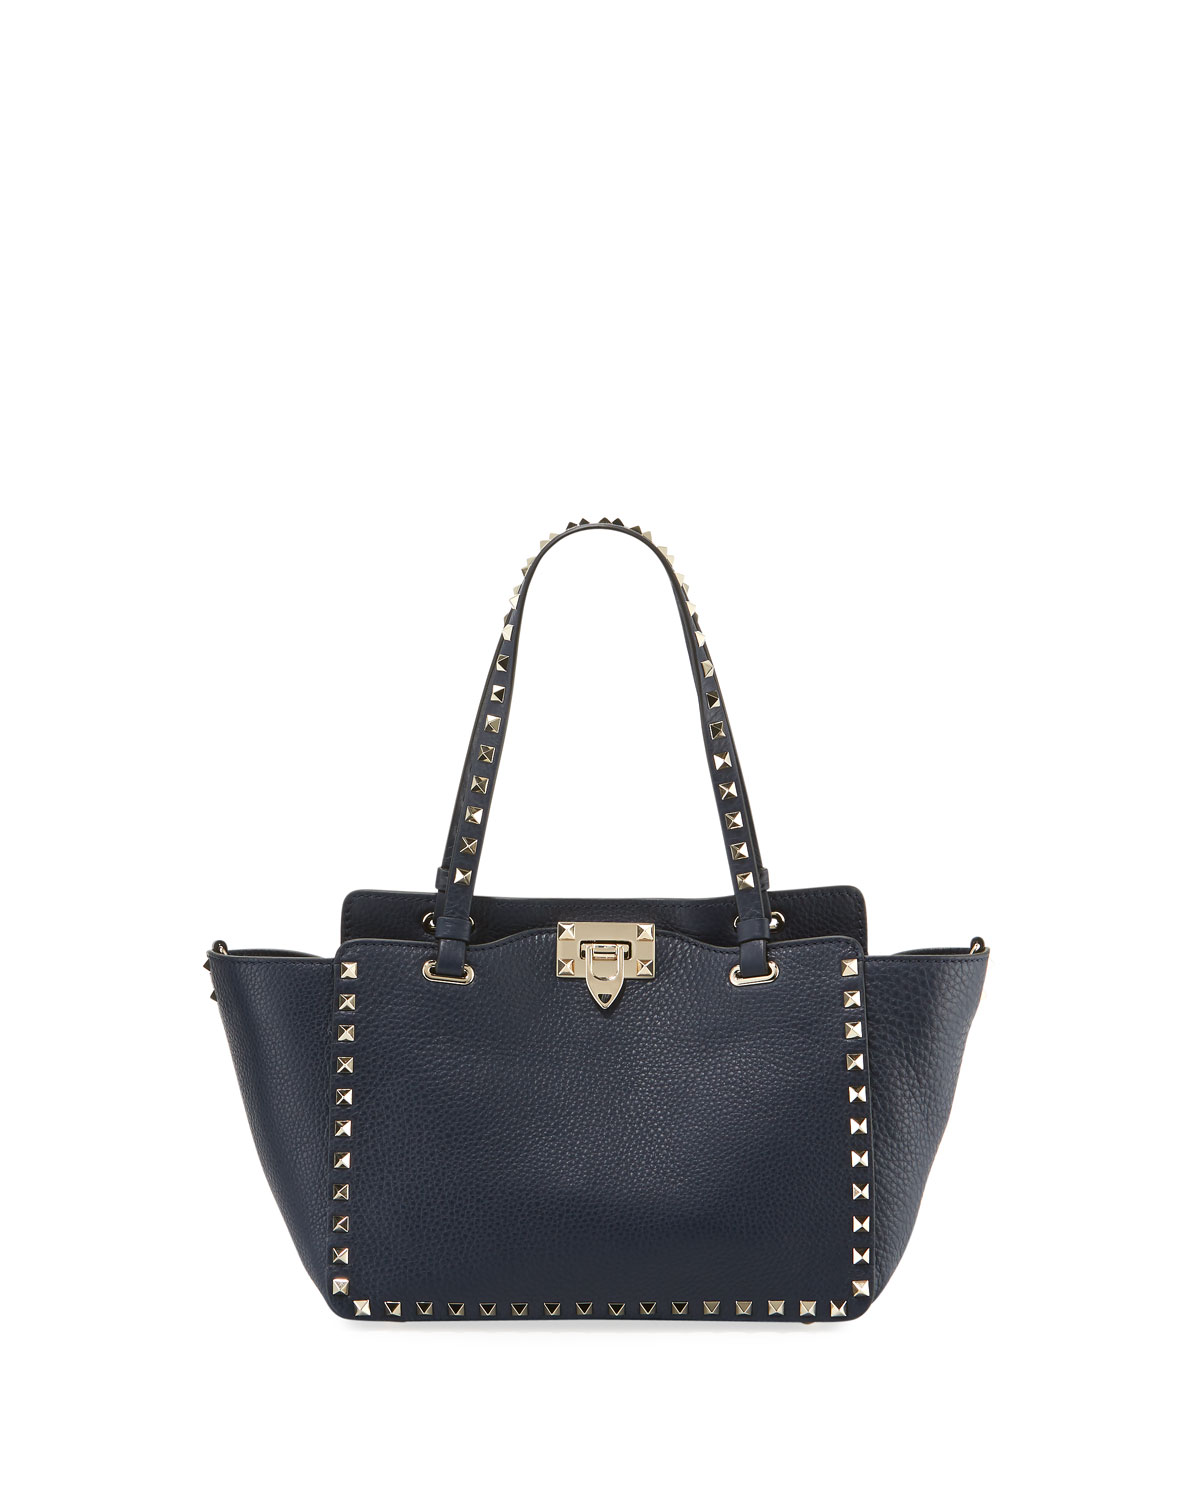 06bc12c055 Valentino Garavani Rockstud Medium Leather Tote Bag